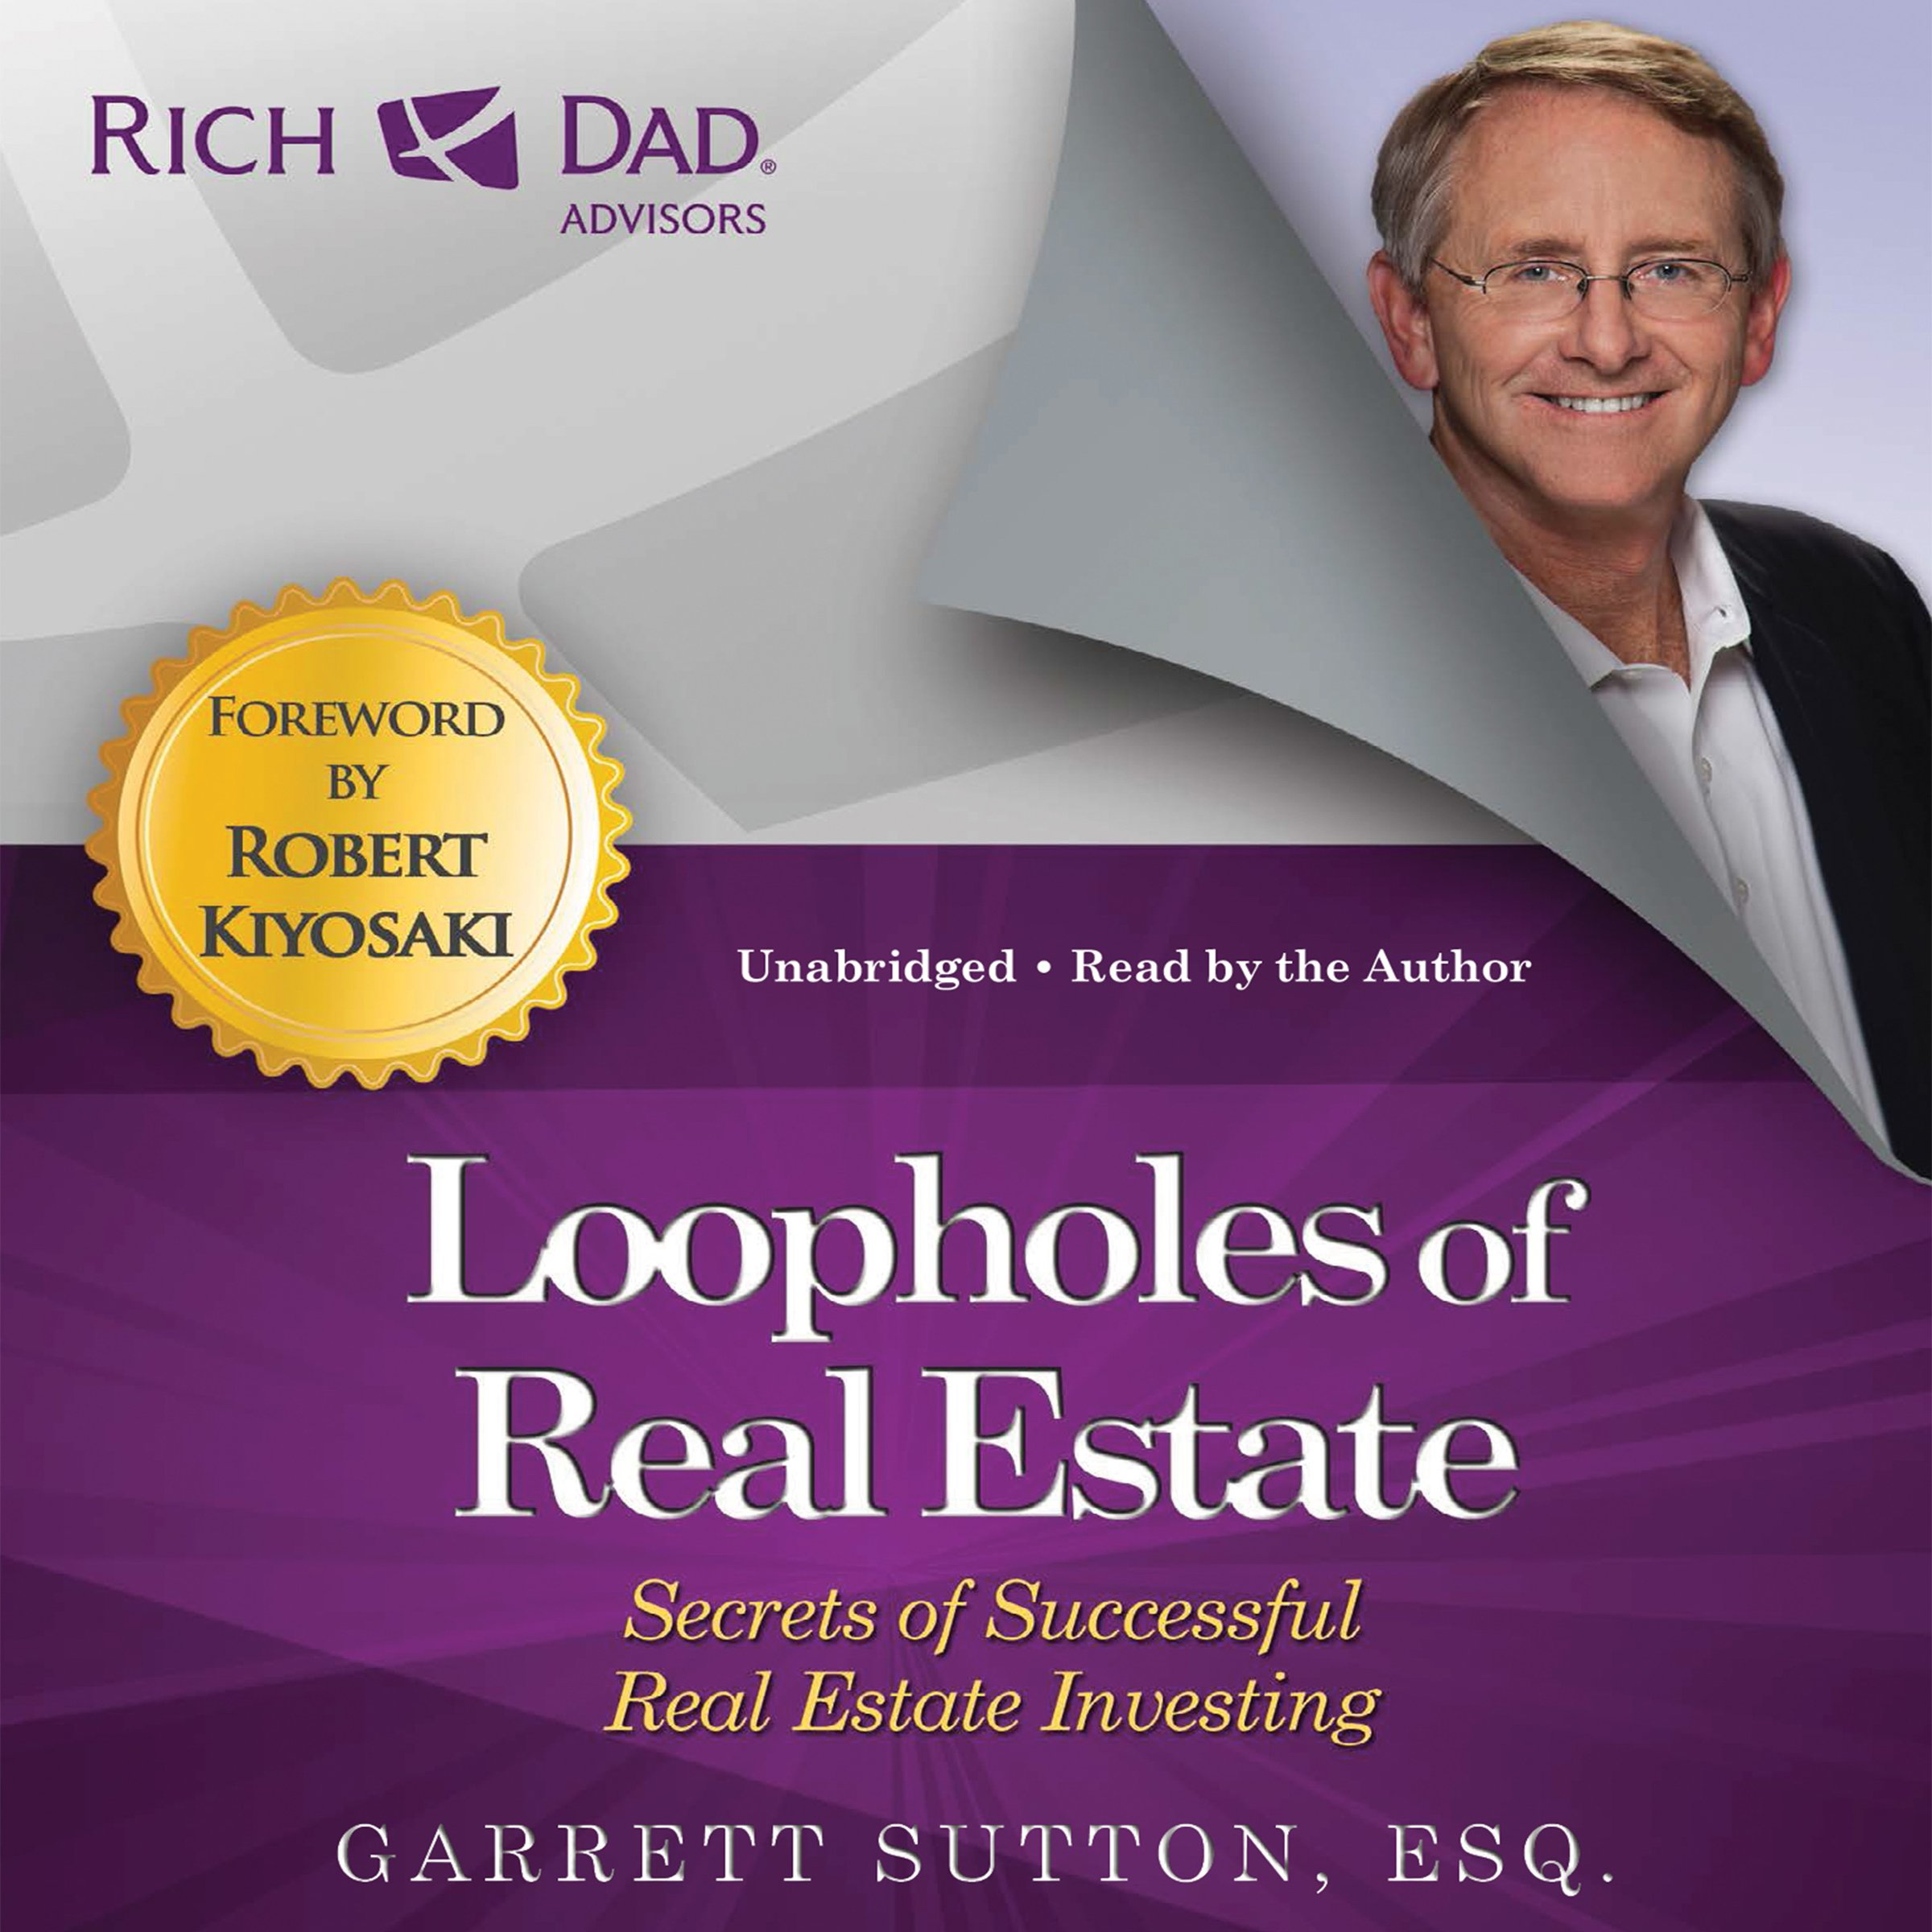 Loopholes Of Real Estate  Secrets Of Successful Real Estate Investing  Rich Dad Advisors